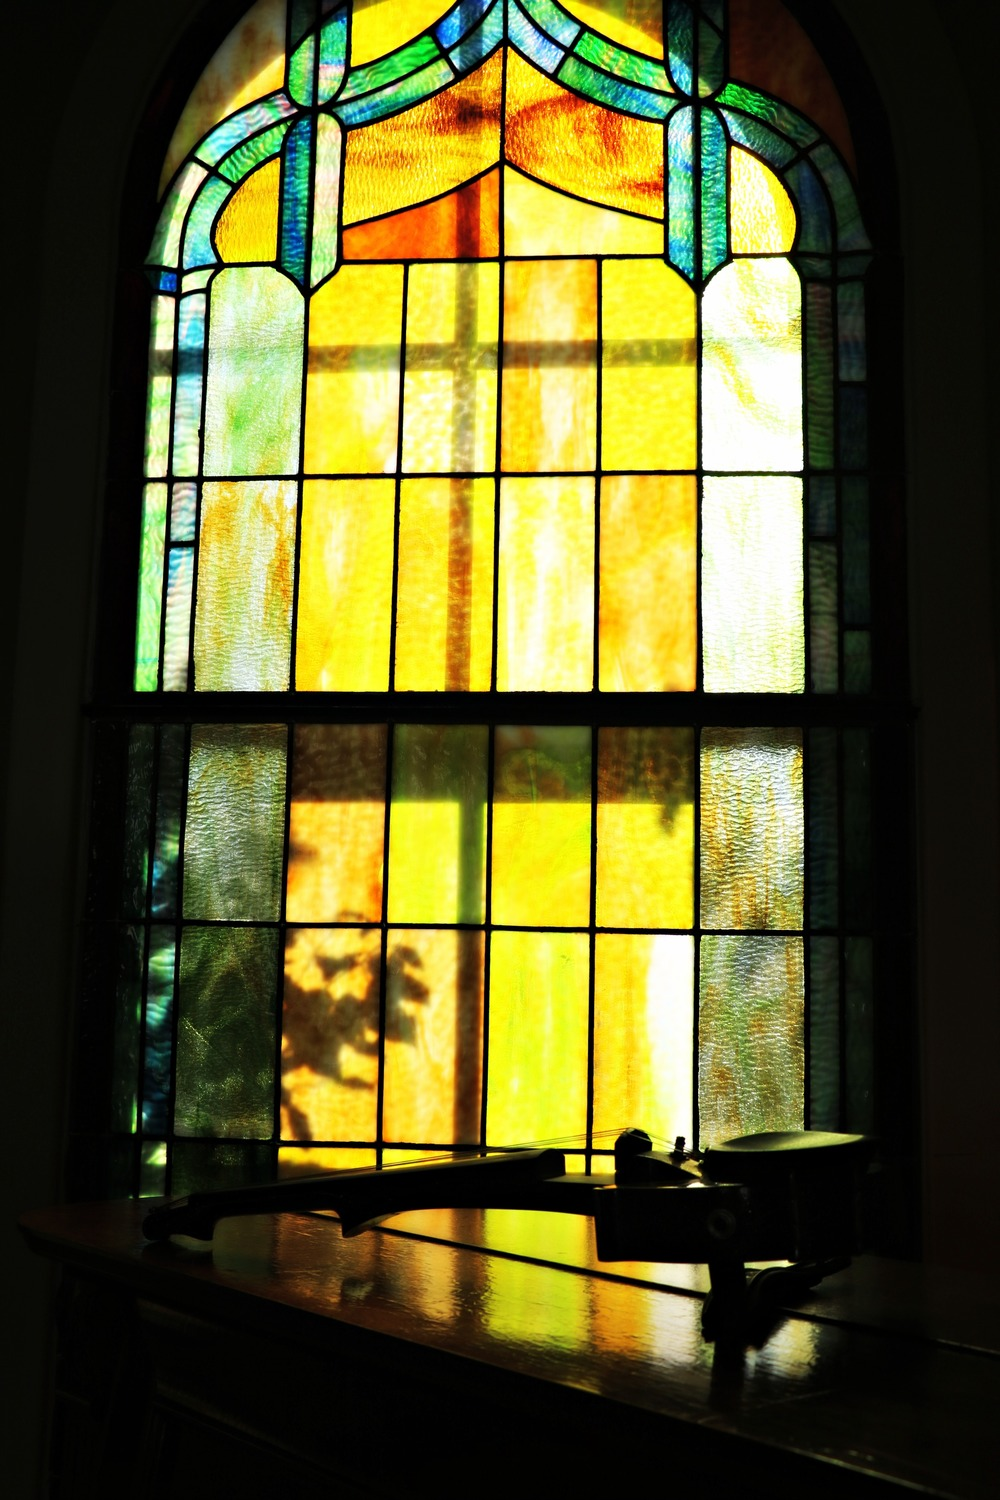 Silhouette of my violin in front of a stained glass window